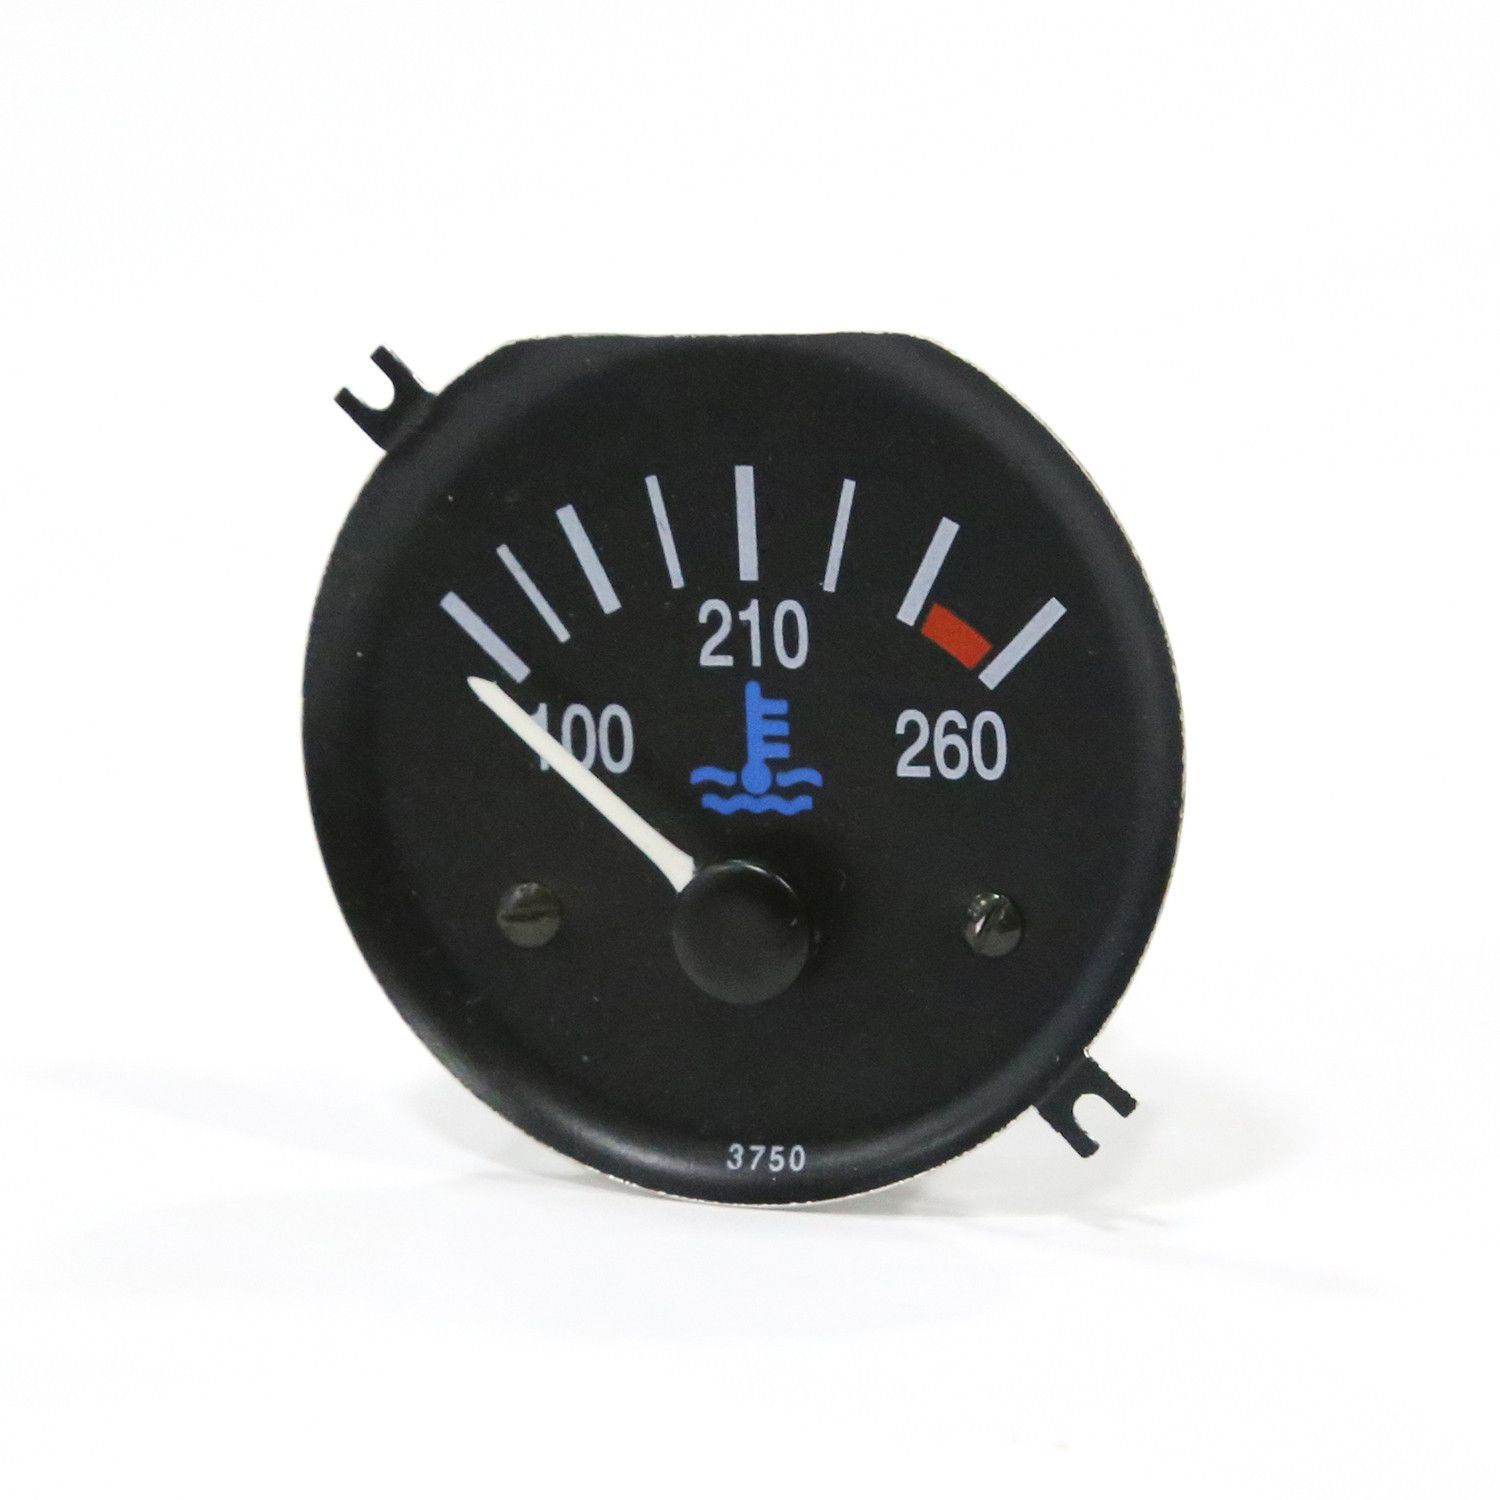 hight resolution of engine temperature gauge 87 91 jeep wrangler yj